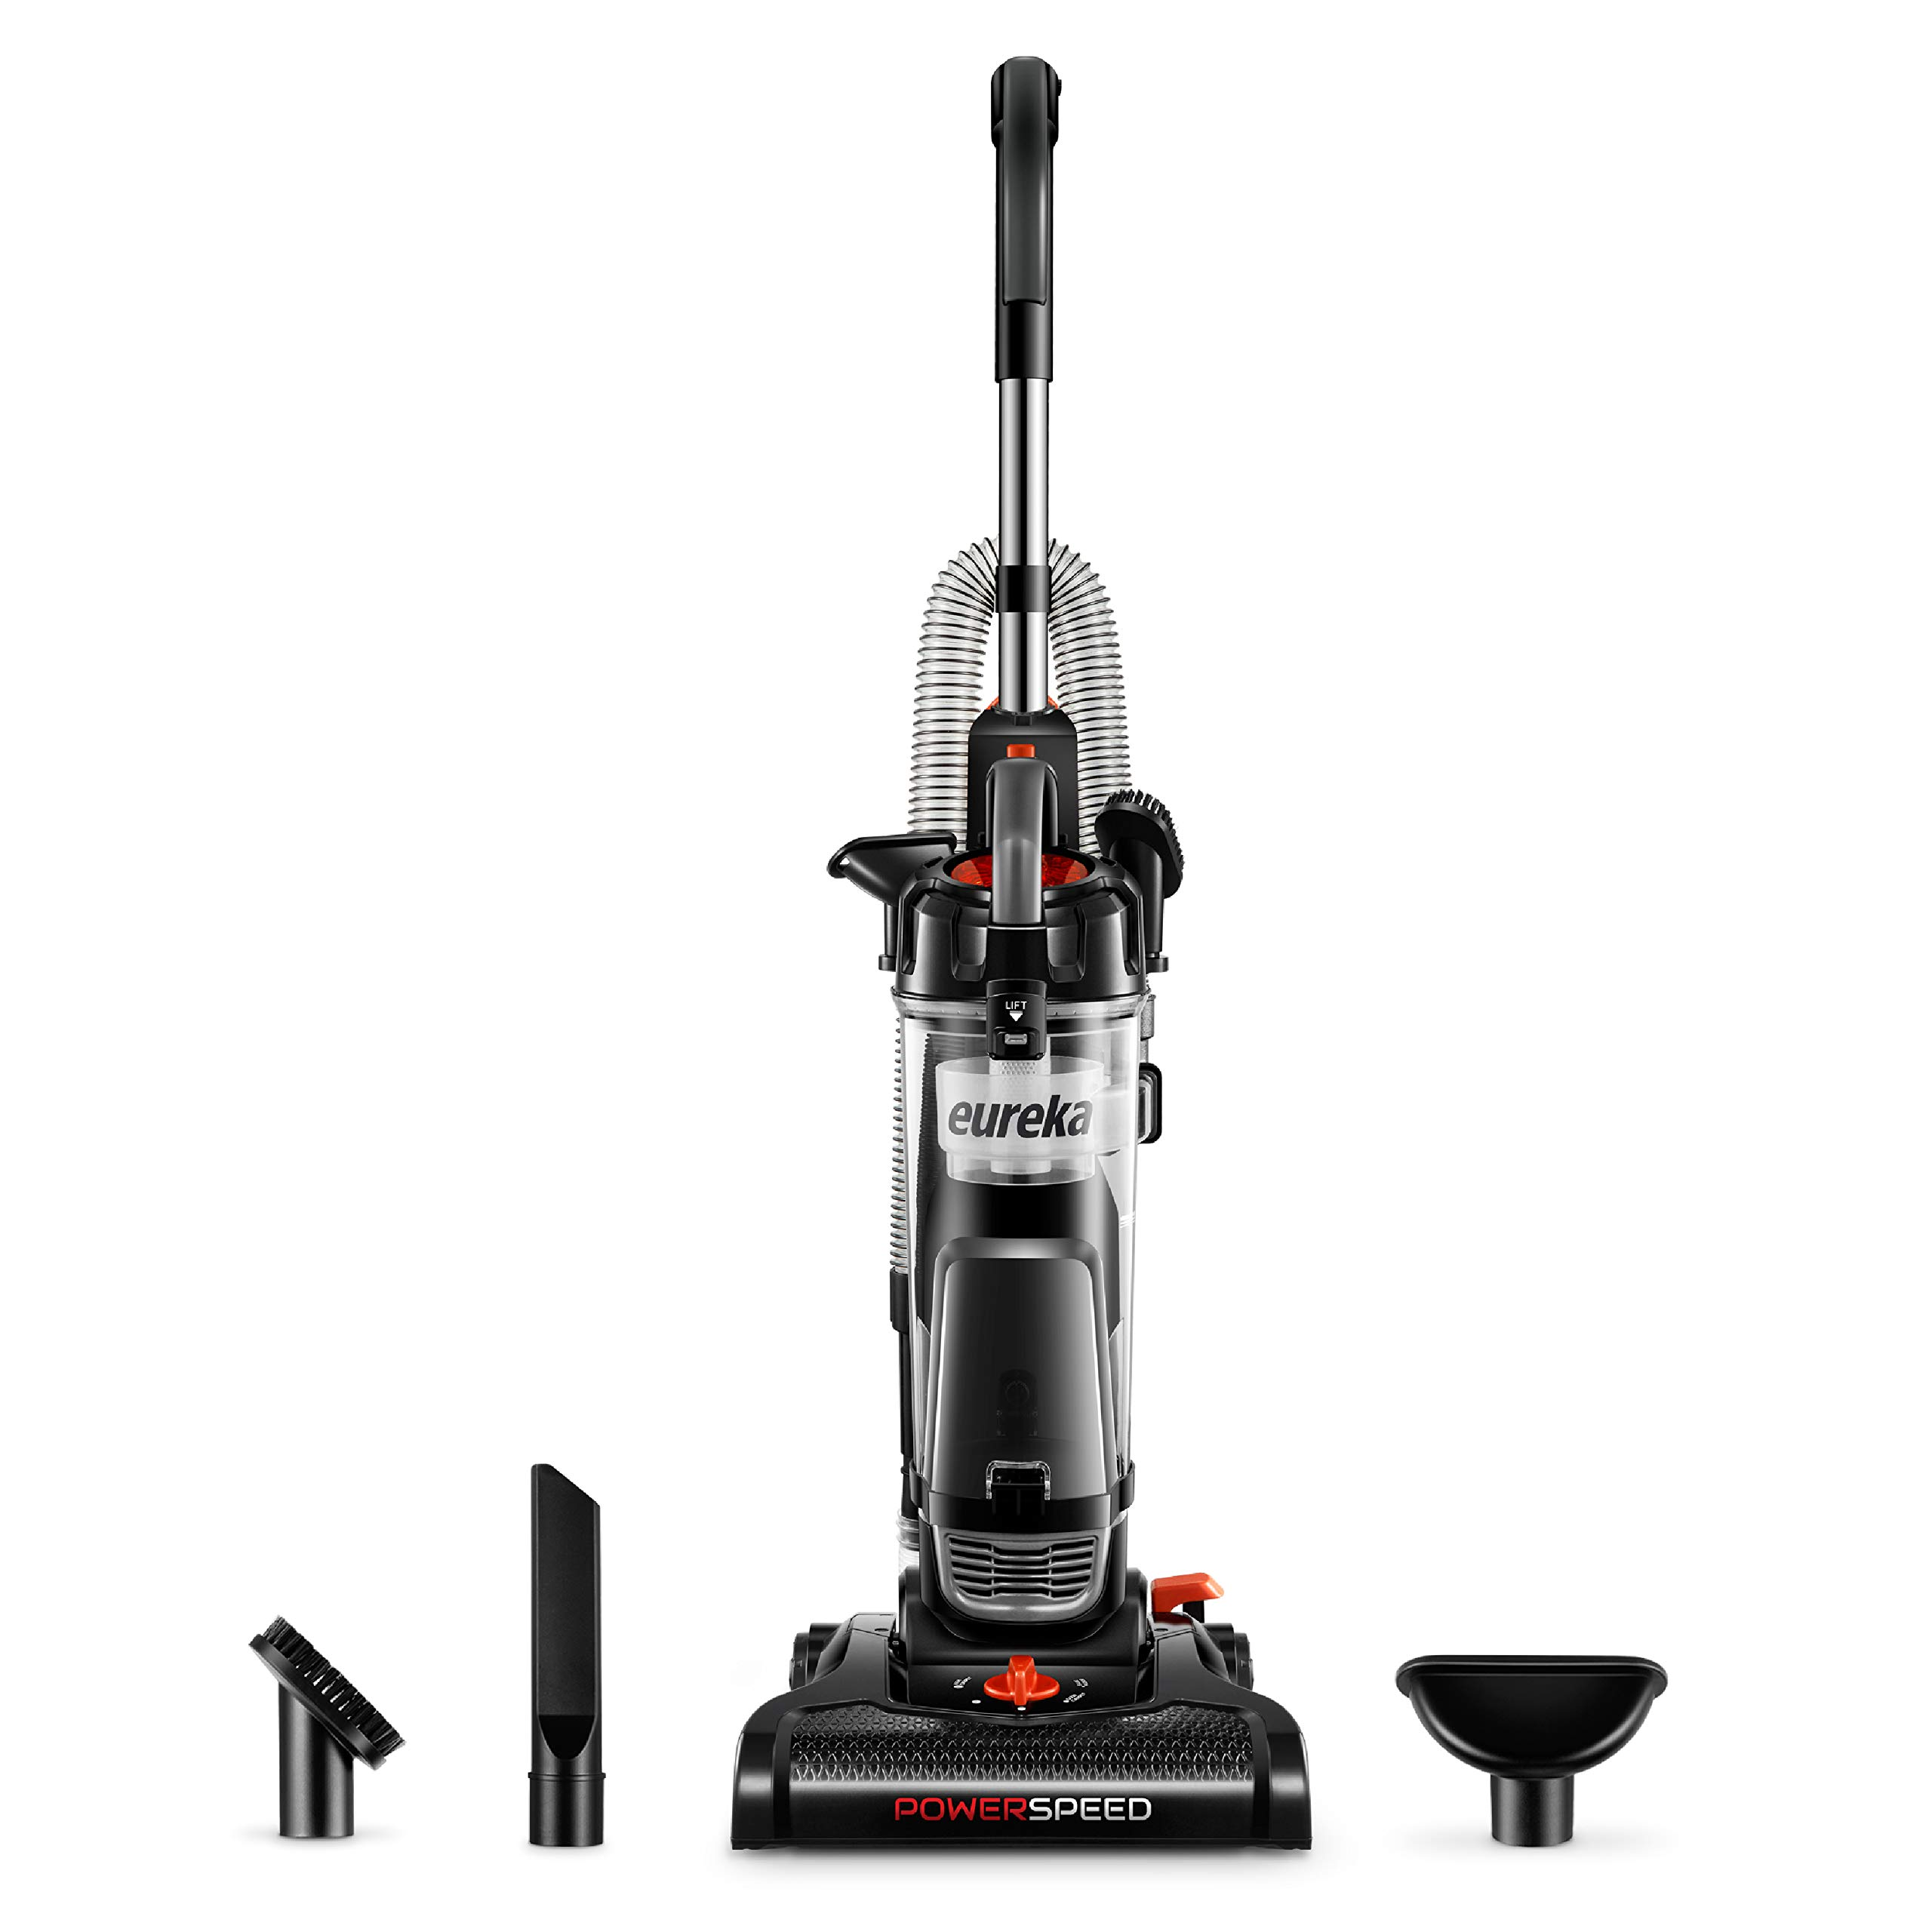 Eureka NEU180B Lightweight Powerful Upright, Pet Hair Vacuum Cleaner for Home, Graphite by EUREKA